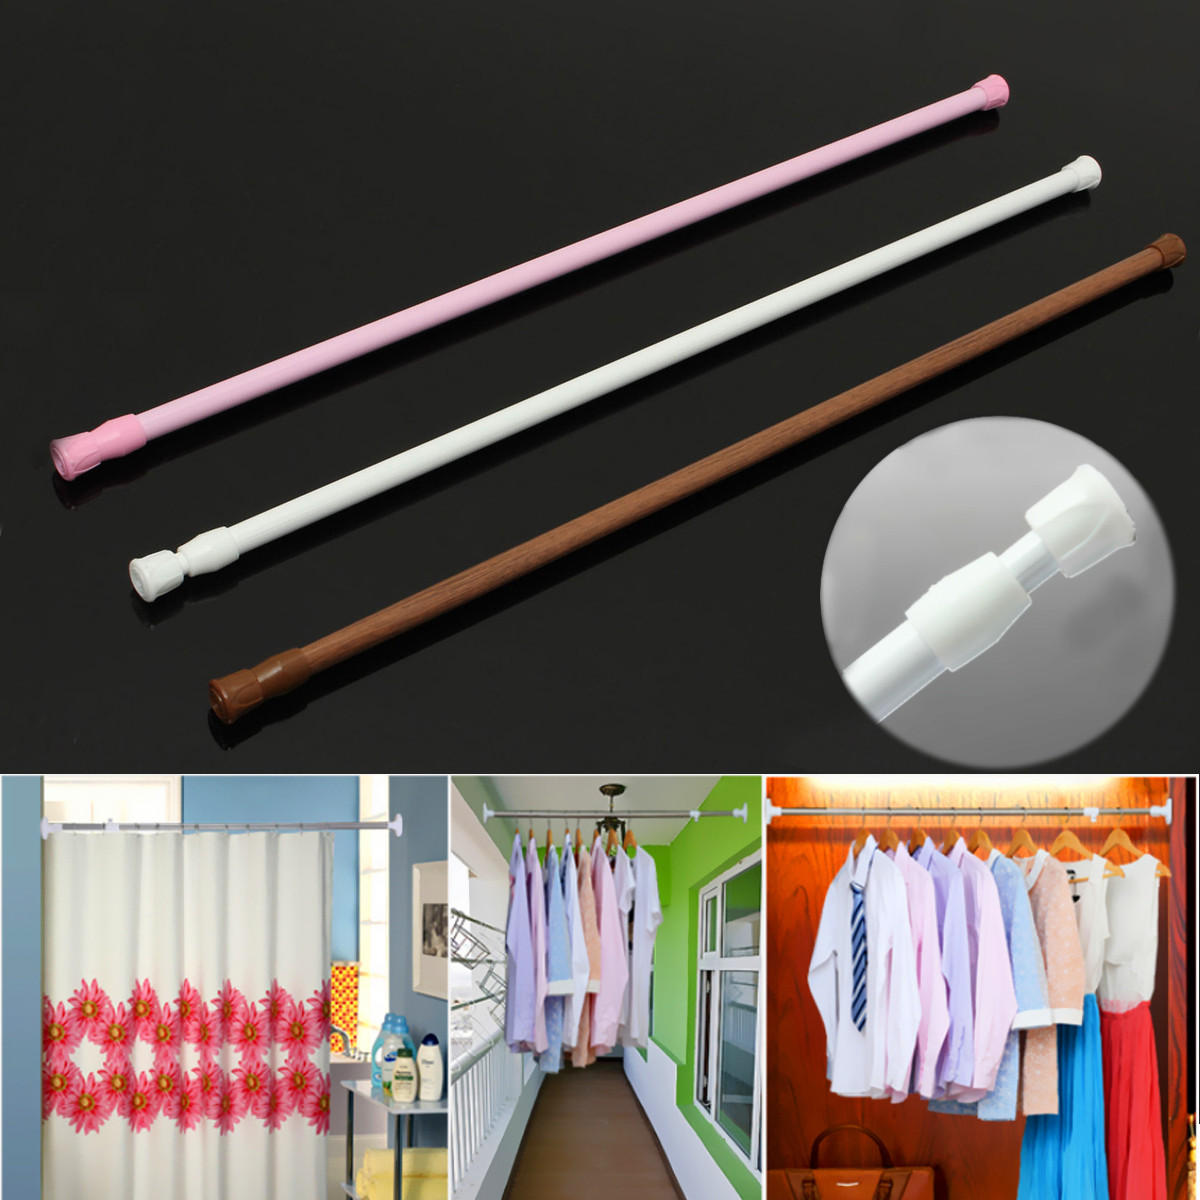 Gentil 60 110cm Extendable Adjustable Spring Tension Curtain Rod Pole Telescopic  Pole Shower Curtain Rod